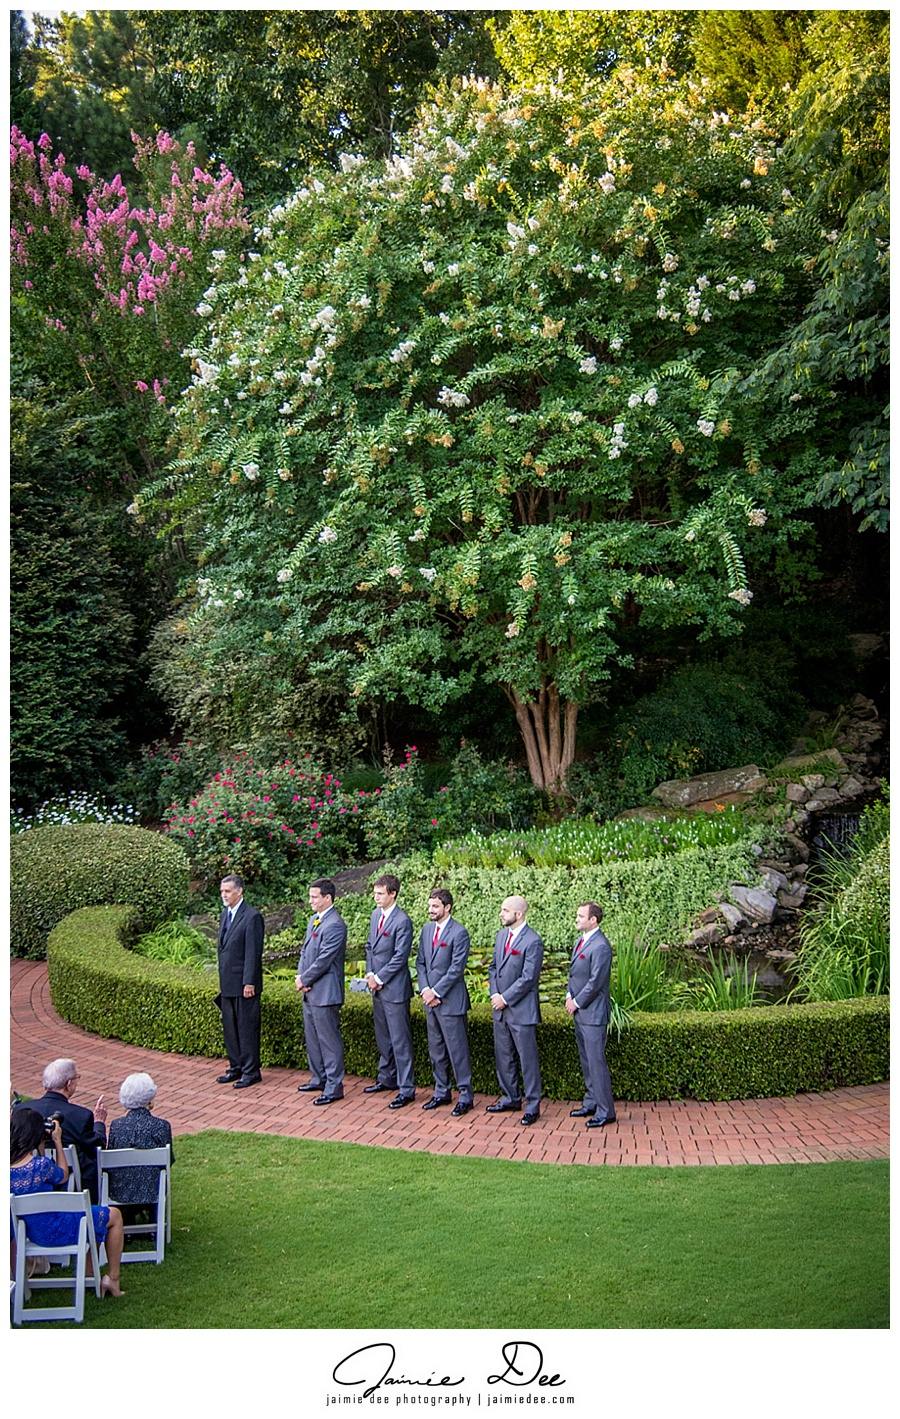 Little Gardens Wedding Photos | Atlanta Wedding Photographers | Jaimie Dee Photography